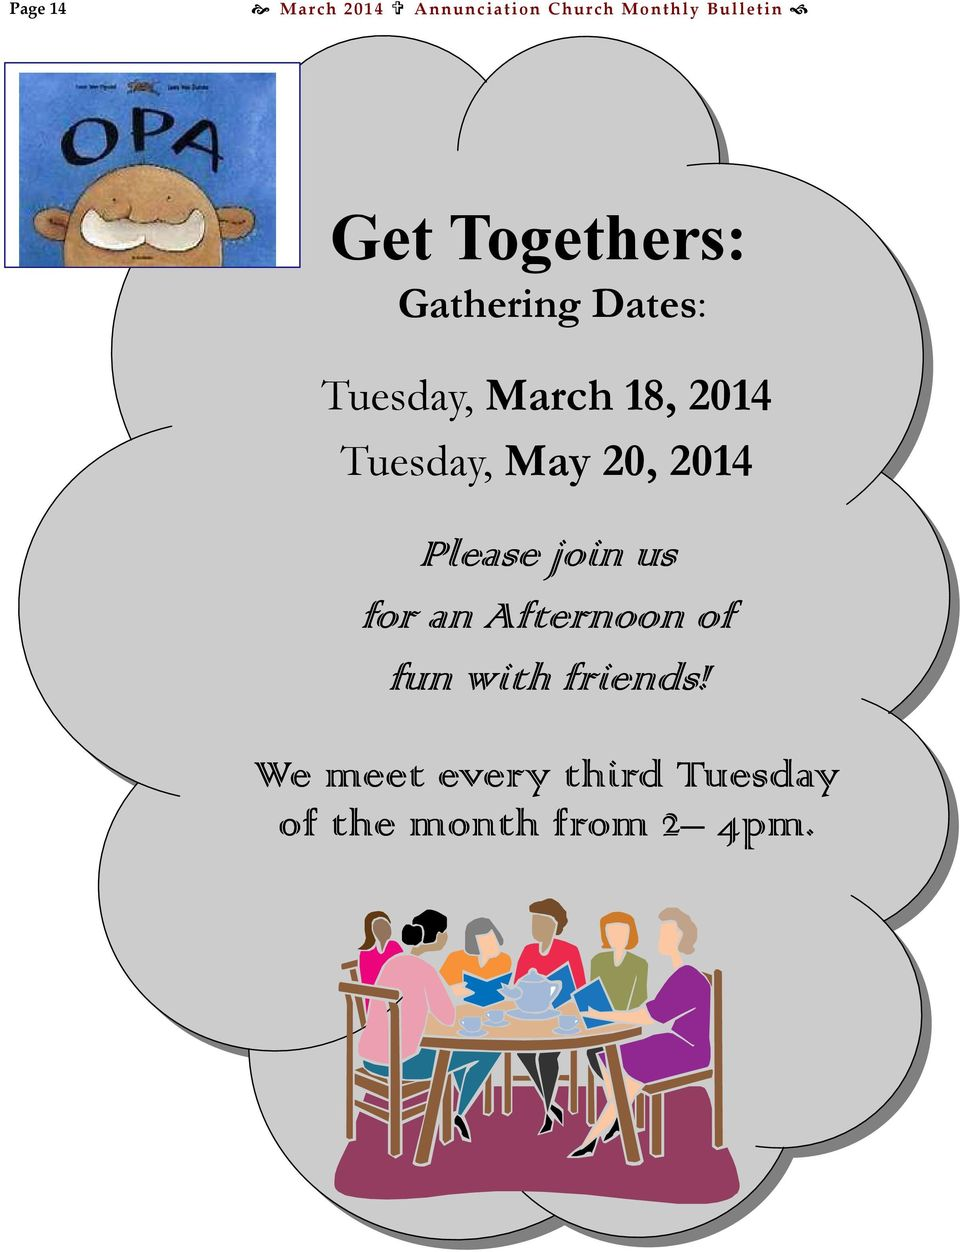 Tuesday, May 20, 2014 Please join us for an Afternoon of